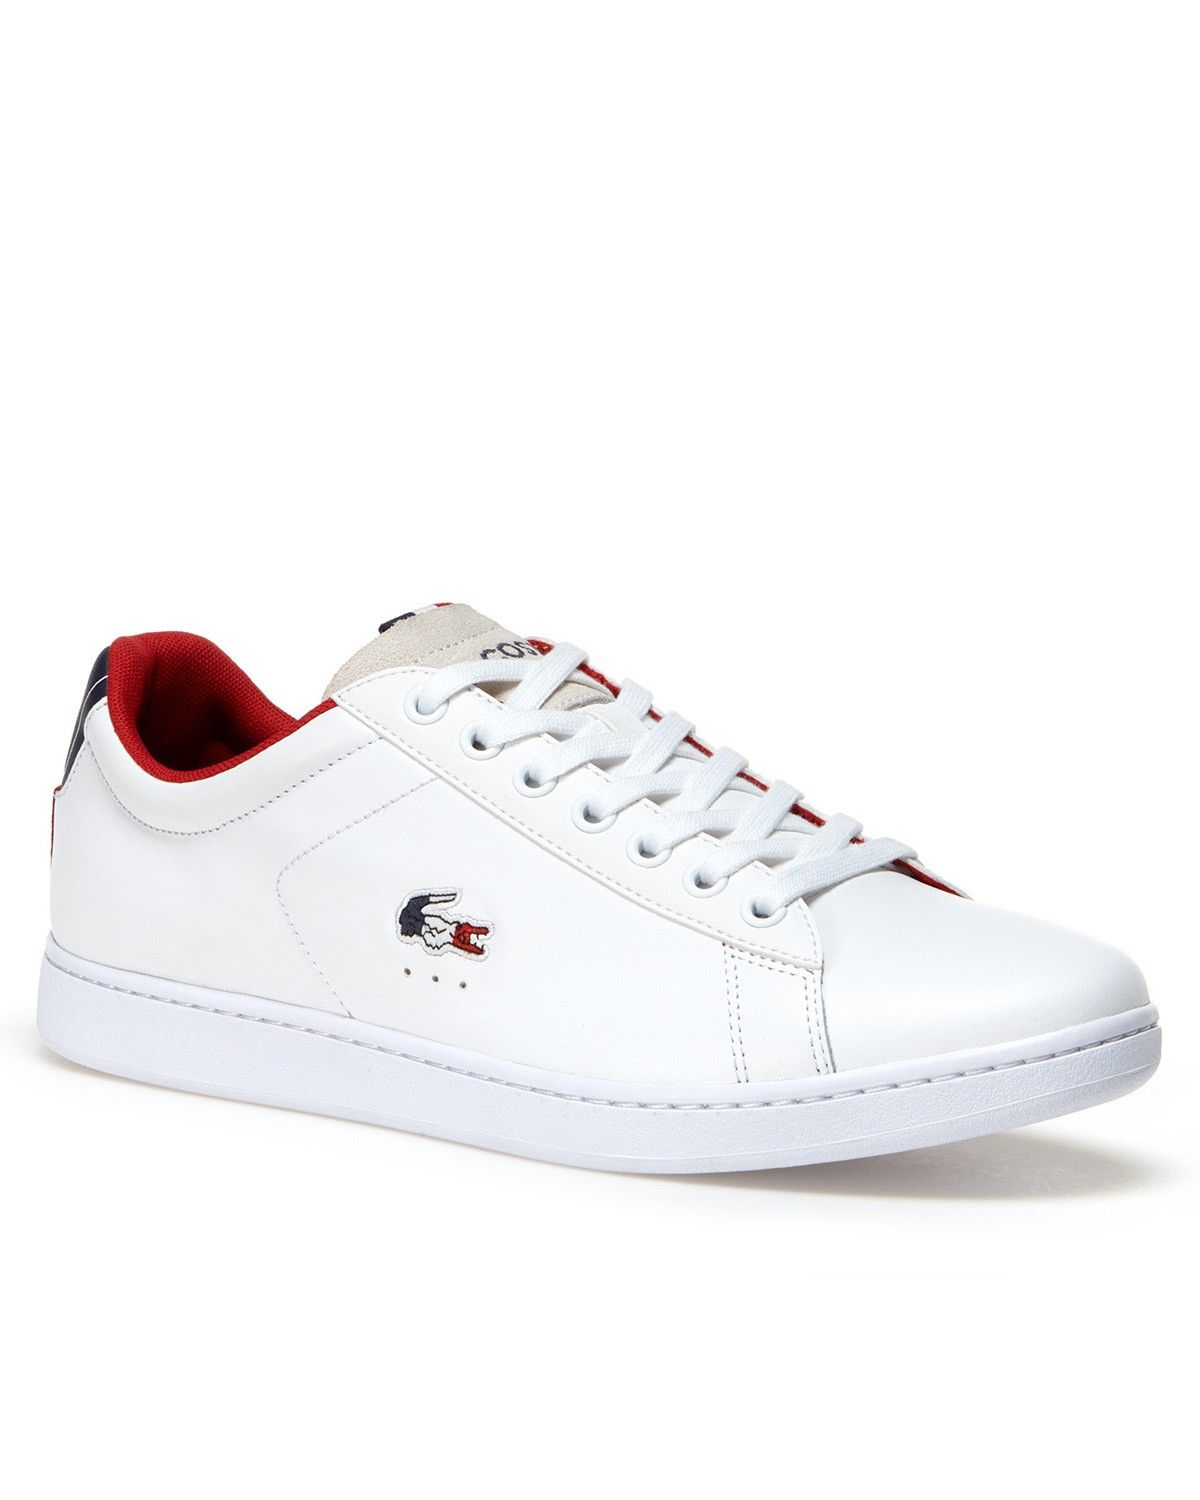 6da5d1a38a White LACOSTE © Shoes ✶ Carnaby Evo